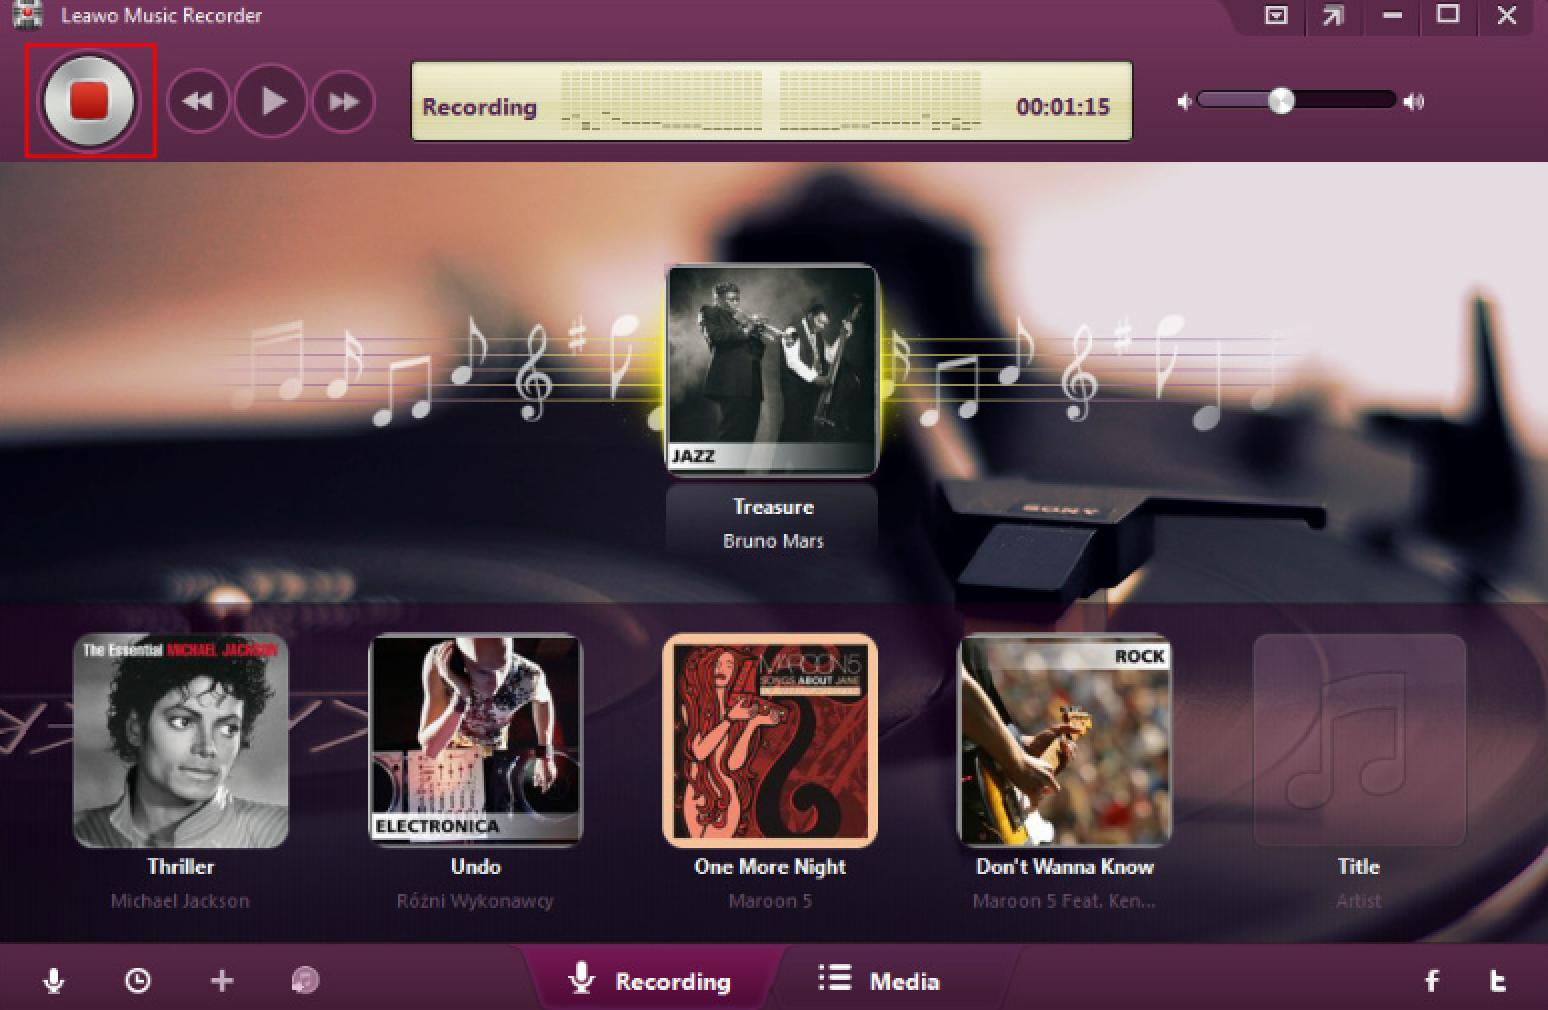 how-to-download-tiktok-audio-with-leawo-music-recorder-02